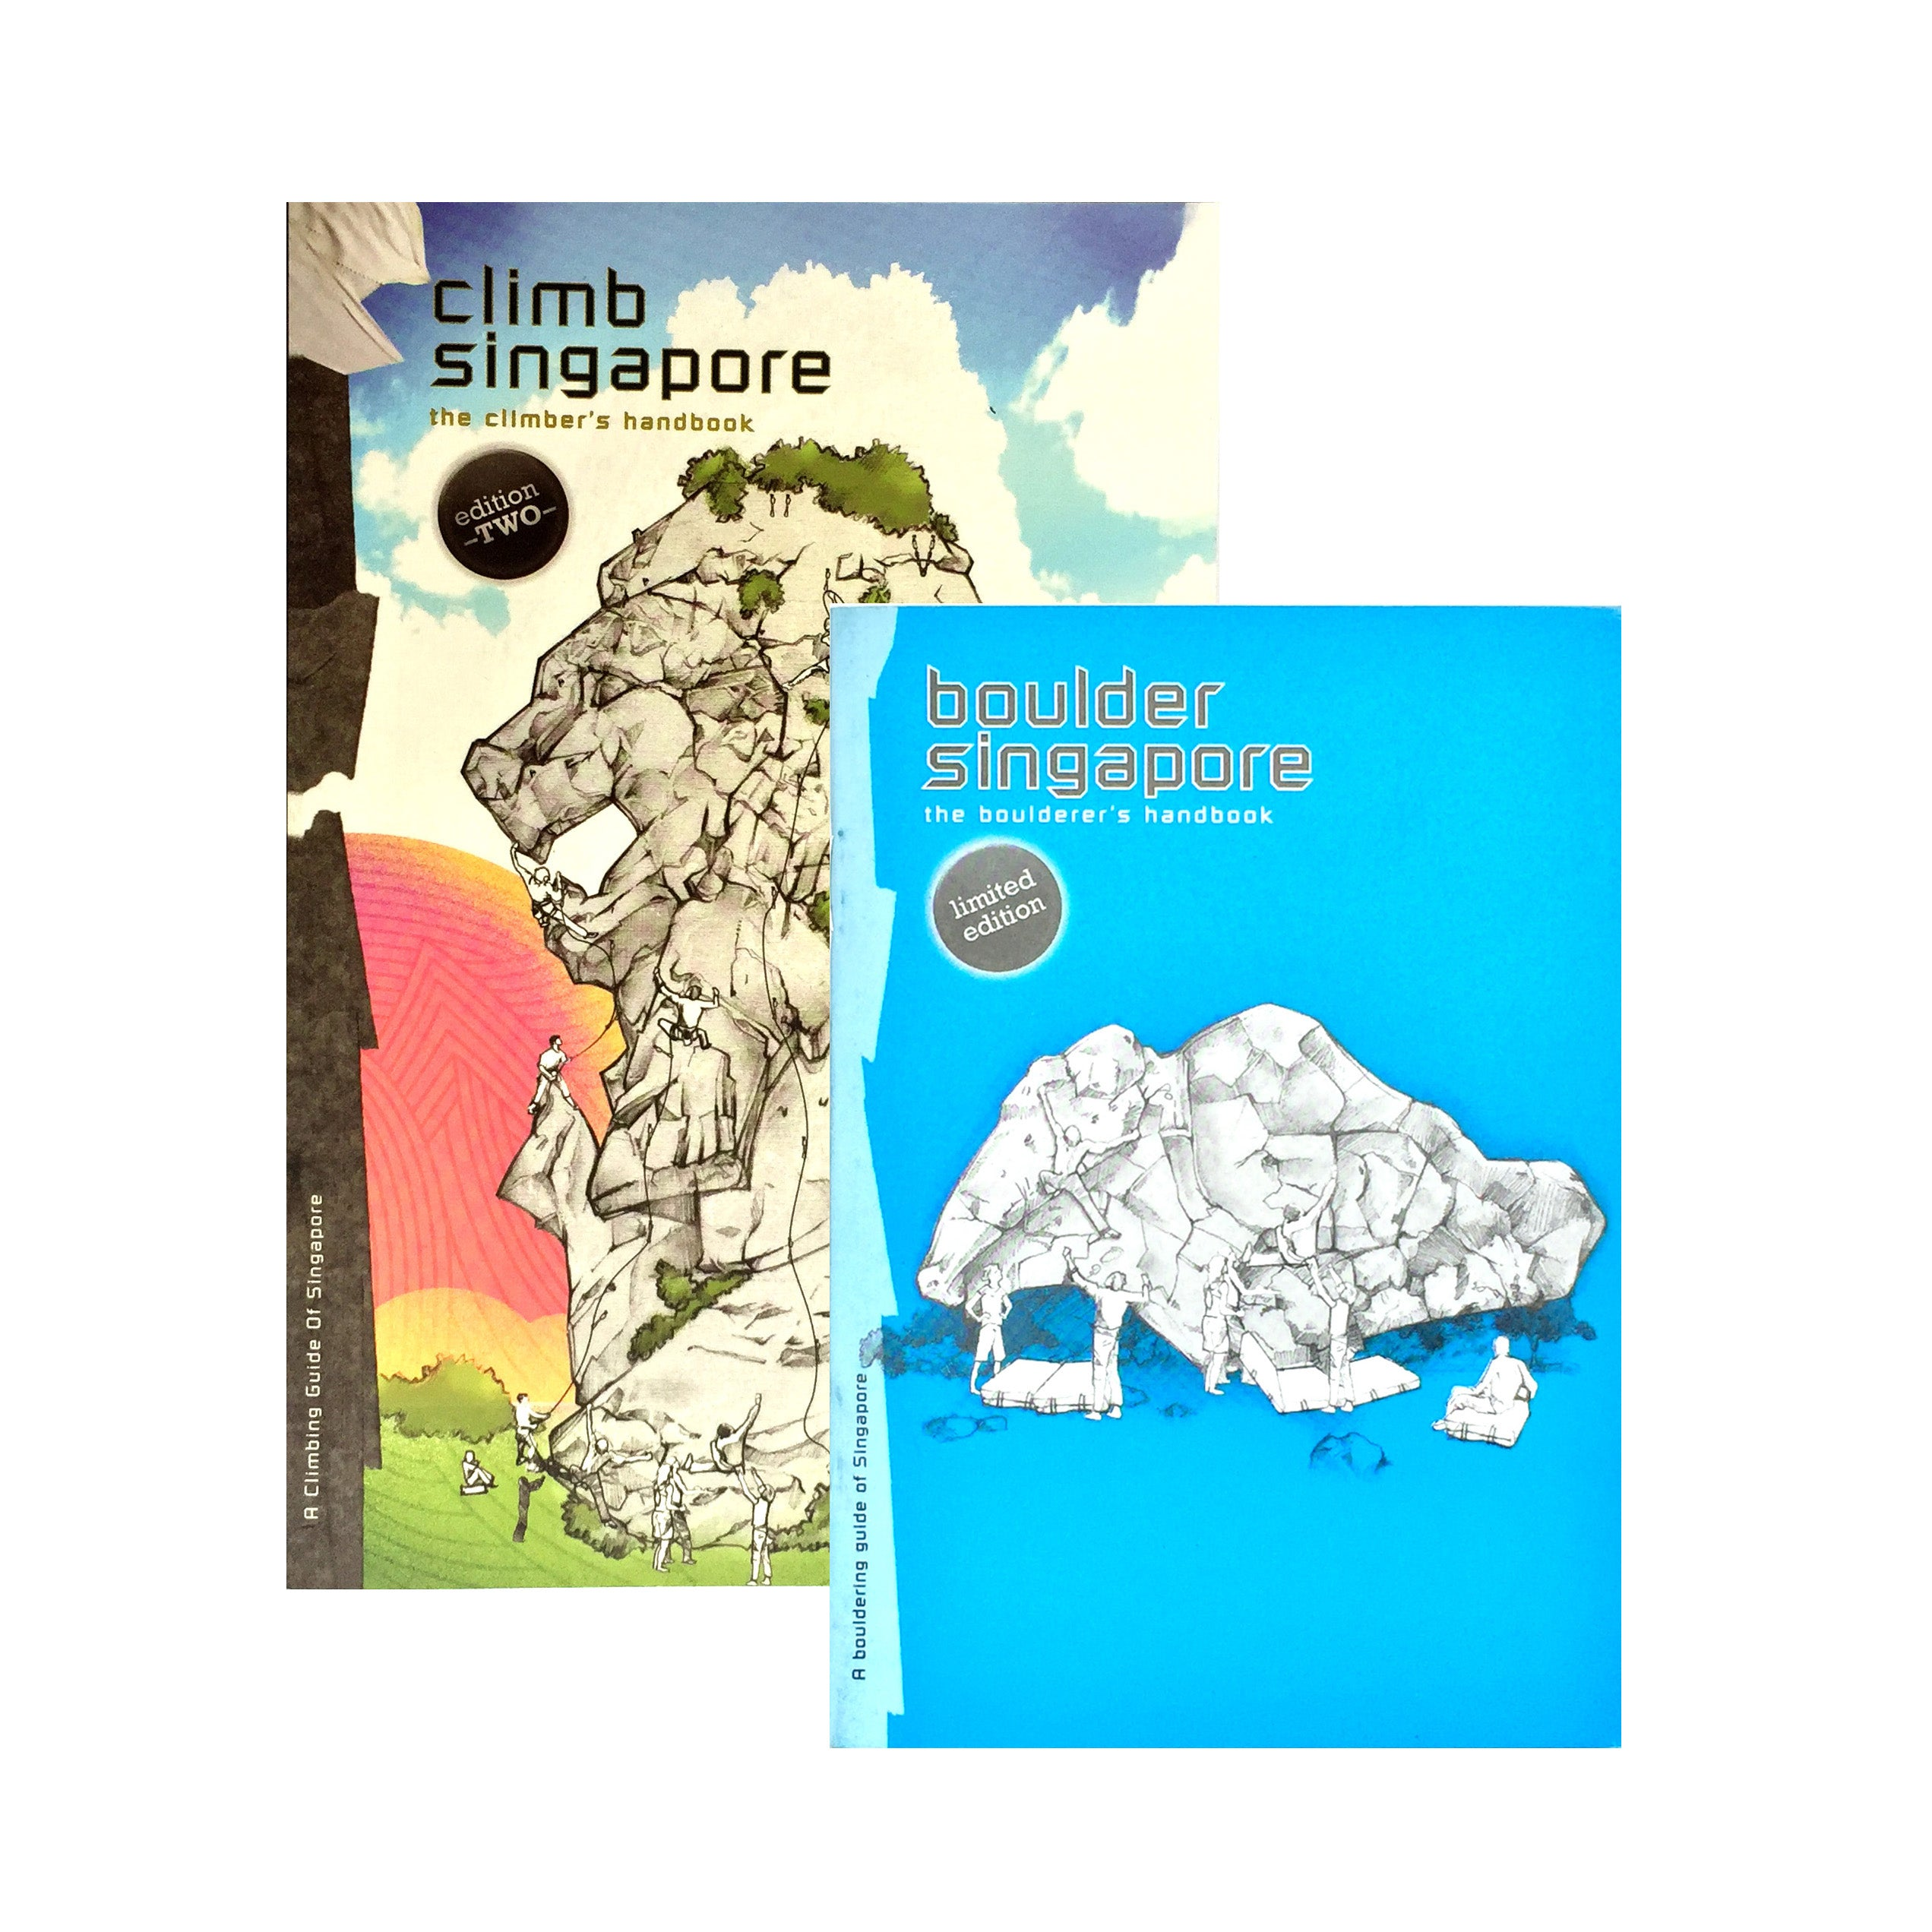 GUIDEBOOK Singapore Bundle (Climb Singapore 2nd Edition + Boulder Singapore 1st Edition)